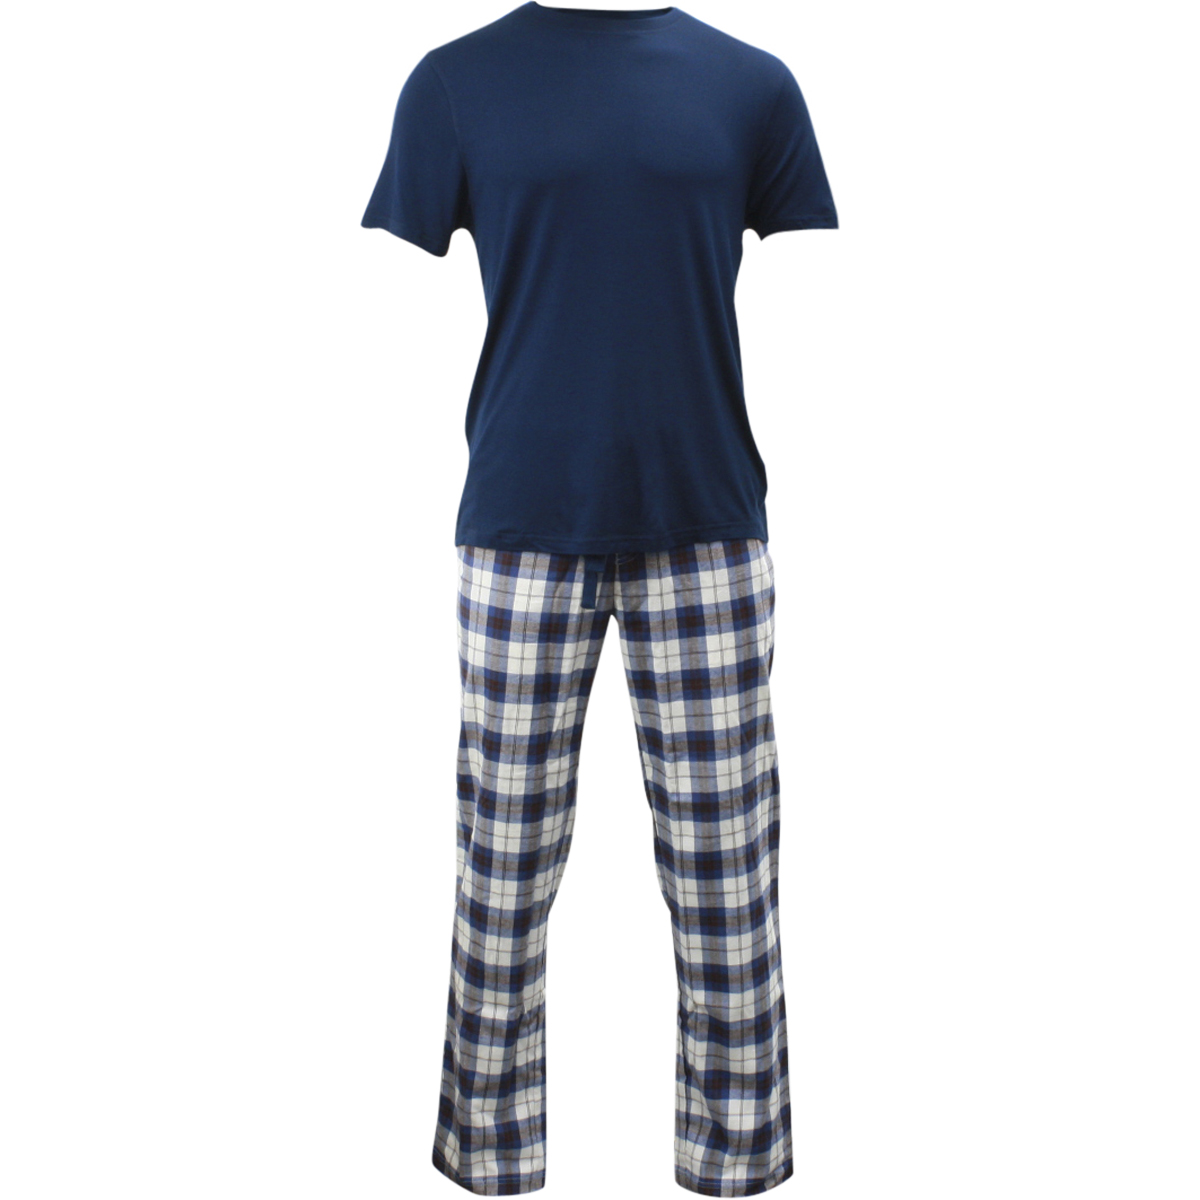 Image of Ugg Men's Grant Pants & Short Sleeve Shirt Pajama Set - Blue - Large